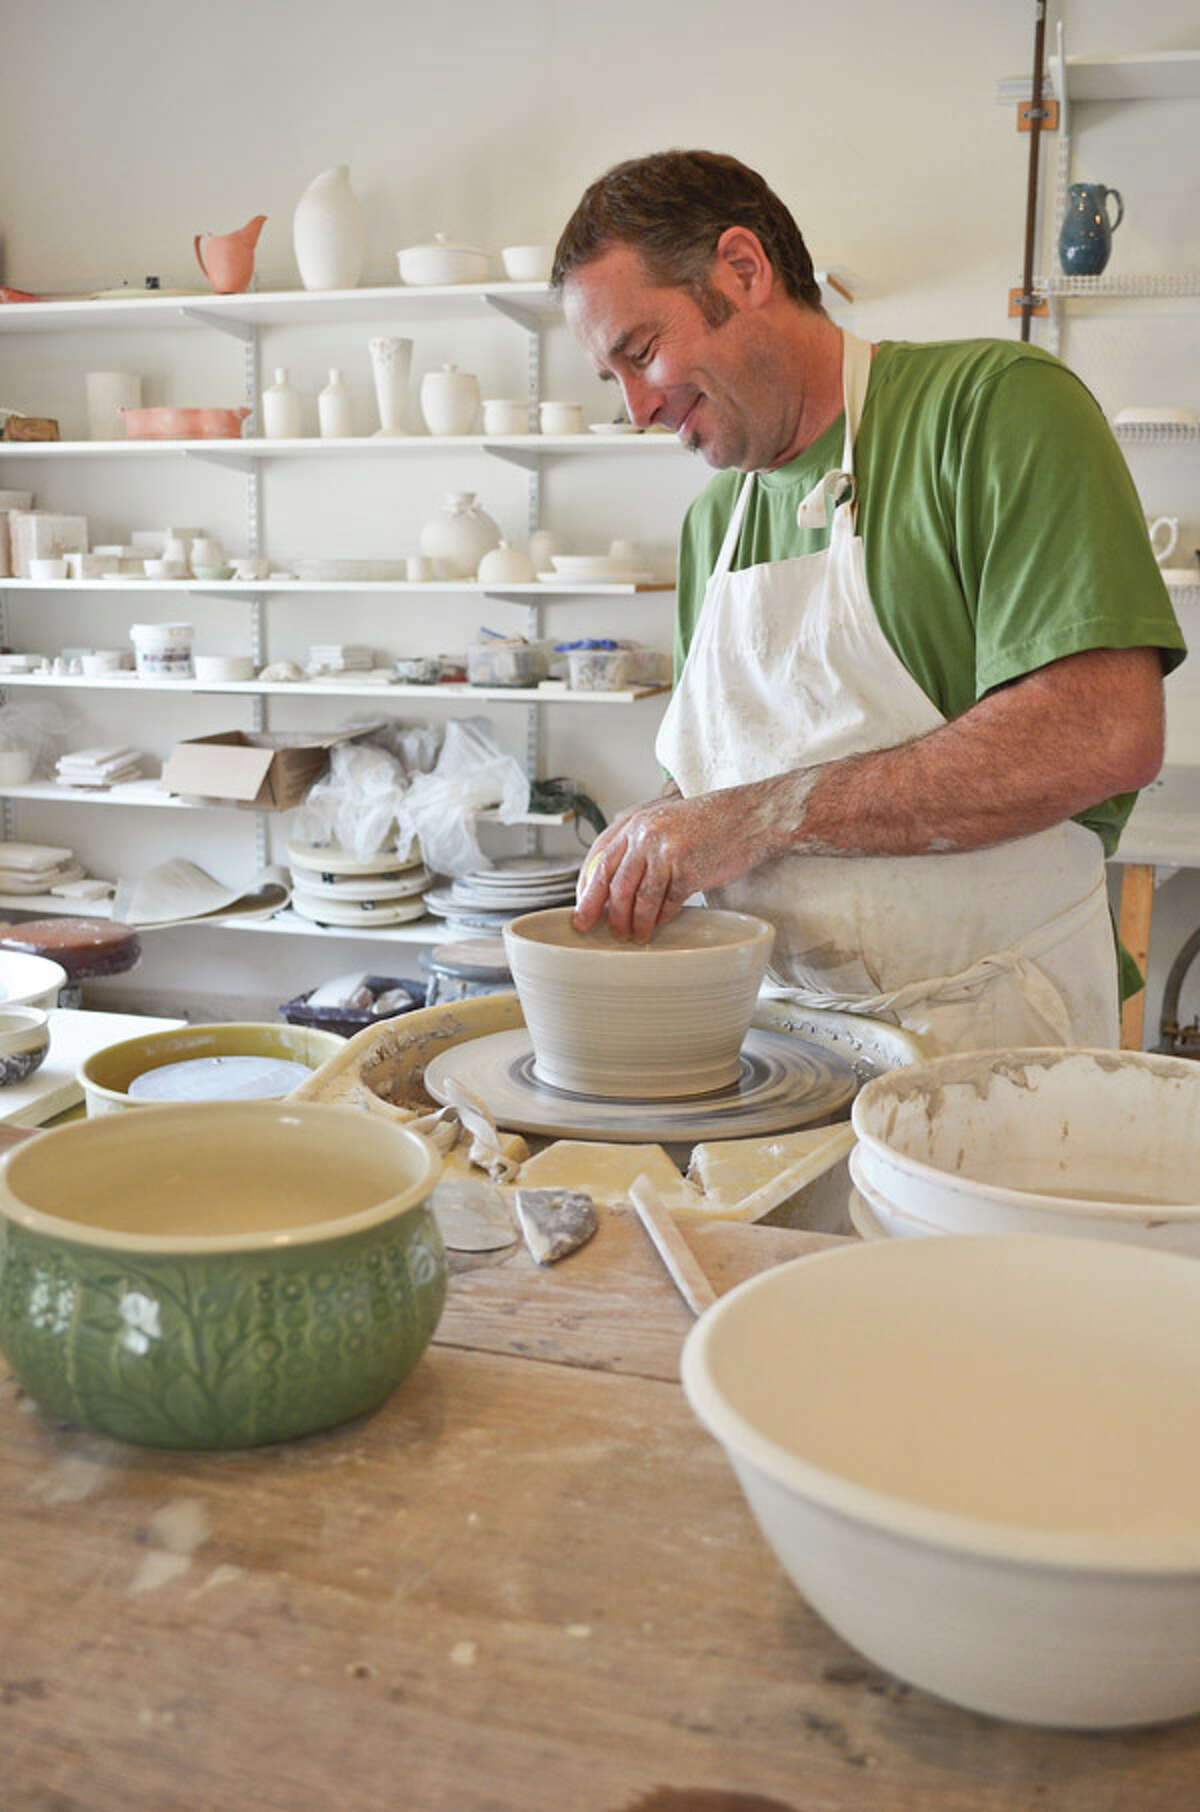 Artisan Doug Klein says texture, pattern, and rhythm are at the heart of both his passions: creating textured clay pottery by day and music by night. Read the full story here.